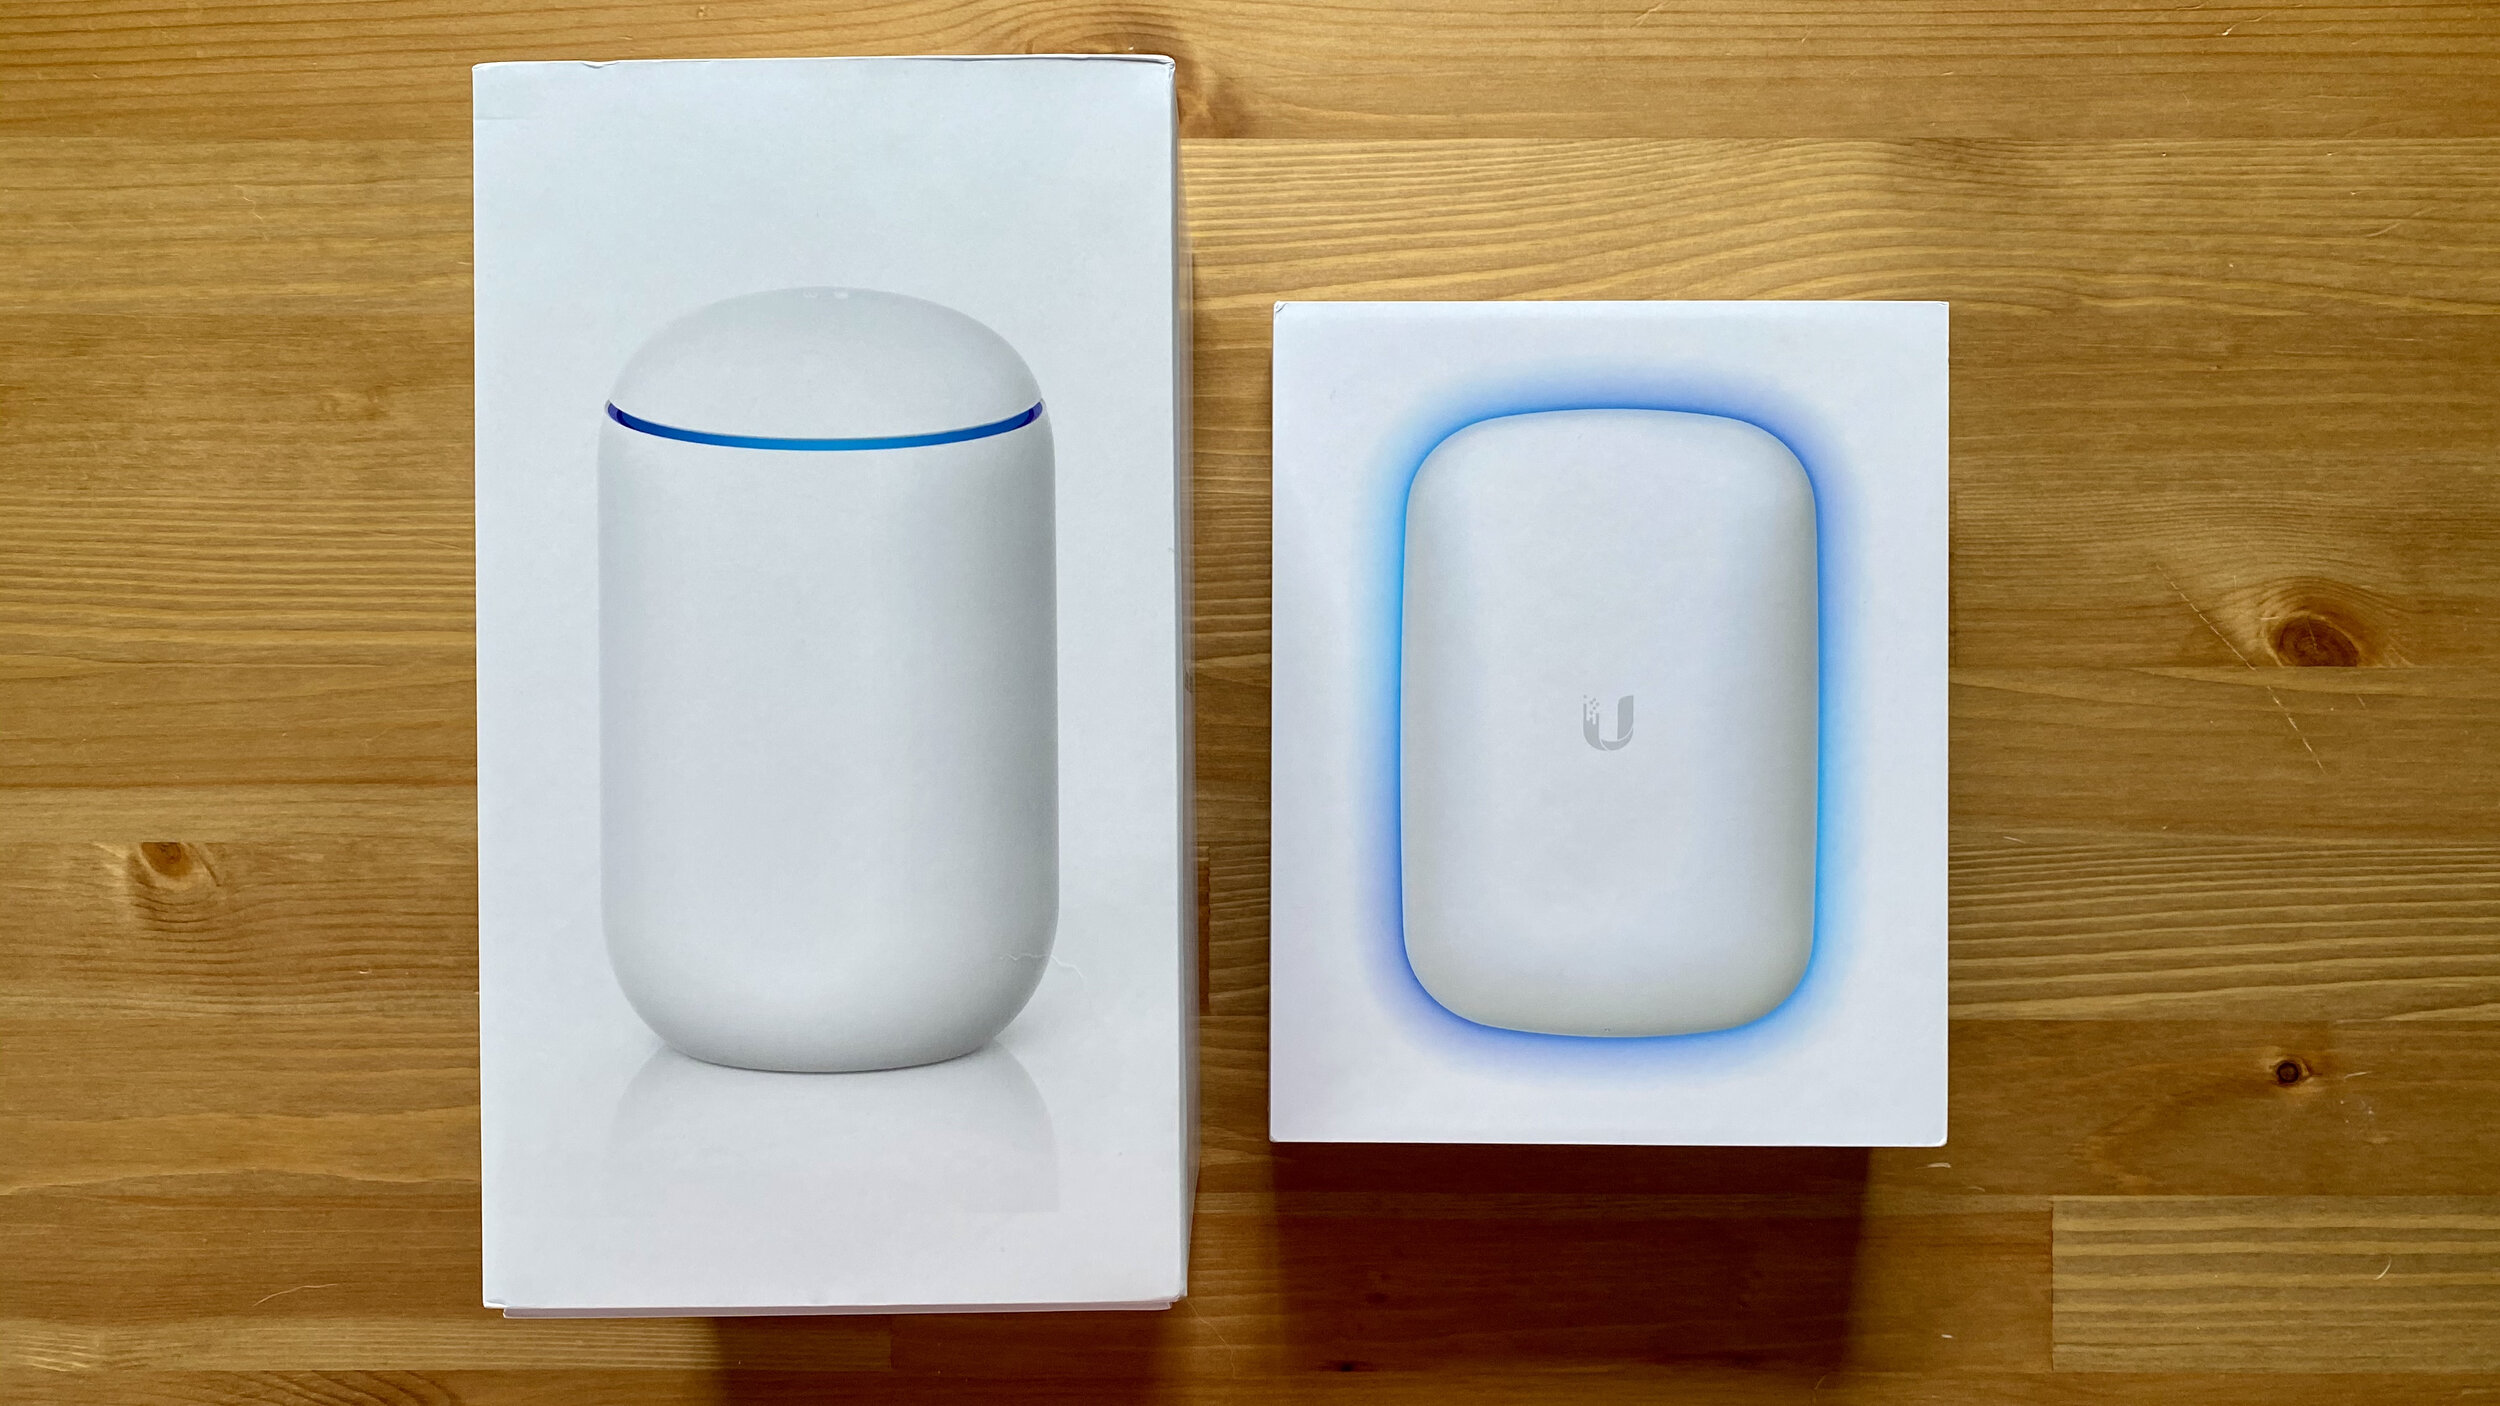 UniFi BeaconHD and Smart Power Plug Review